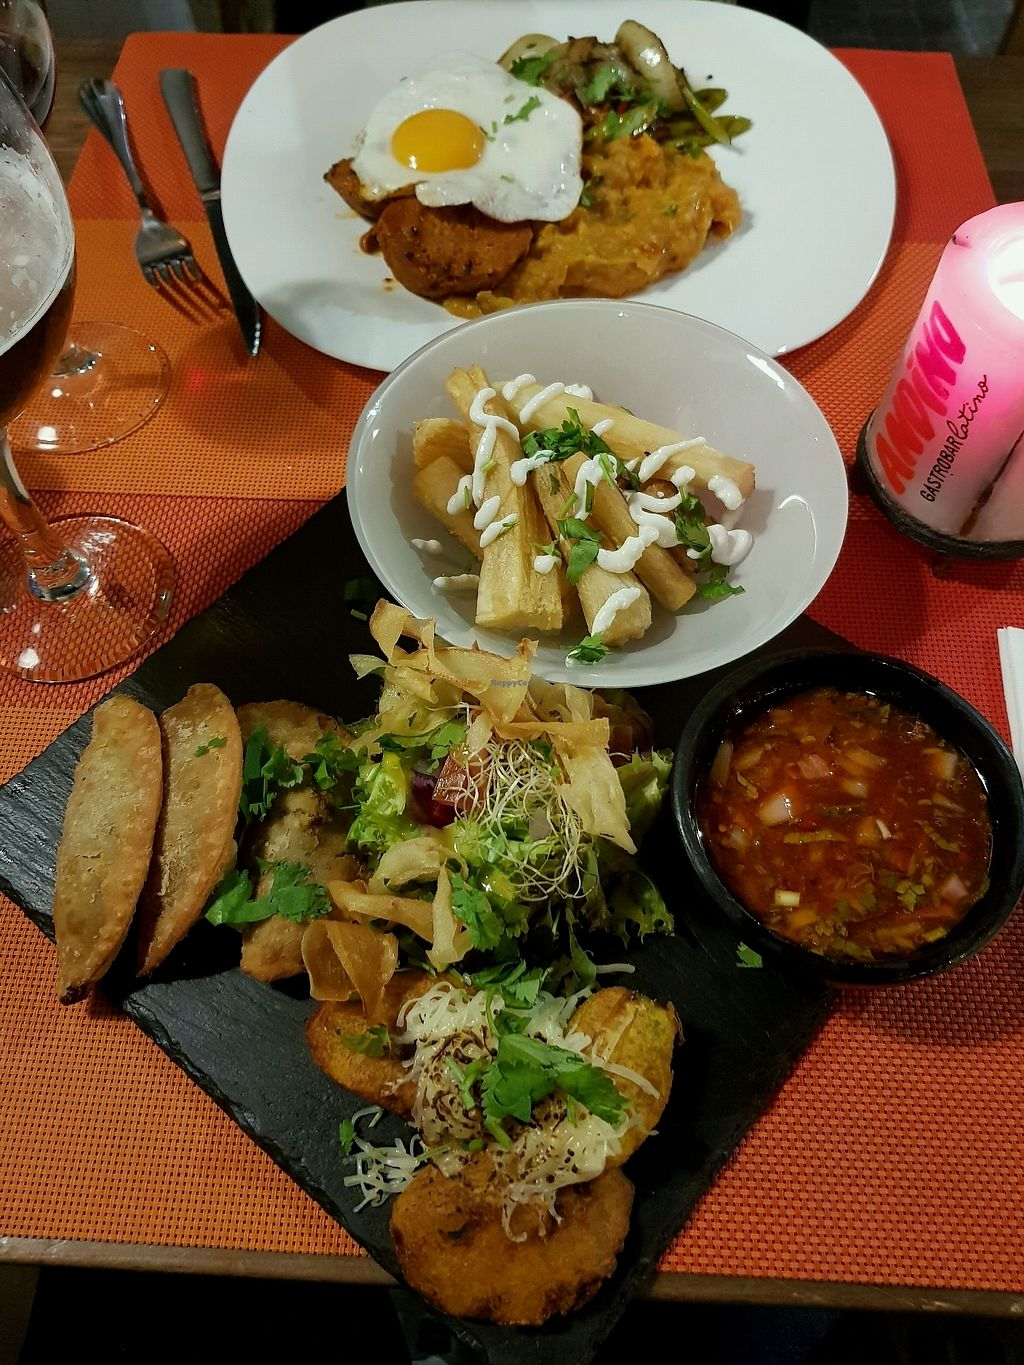 "Photo of Andino Gastrobar  by <a href=""/members/profile/barbicanben"">barbicanben</a> <br/>Vegan tapas options and vegetarian main <br/> October 22, 2017  - <a href='/contact/abuse/image/93527/317763'>Report</a>"